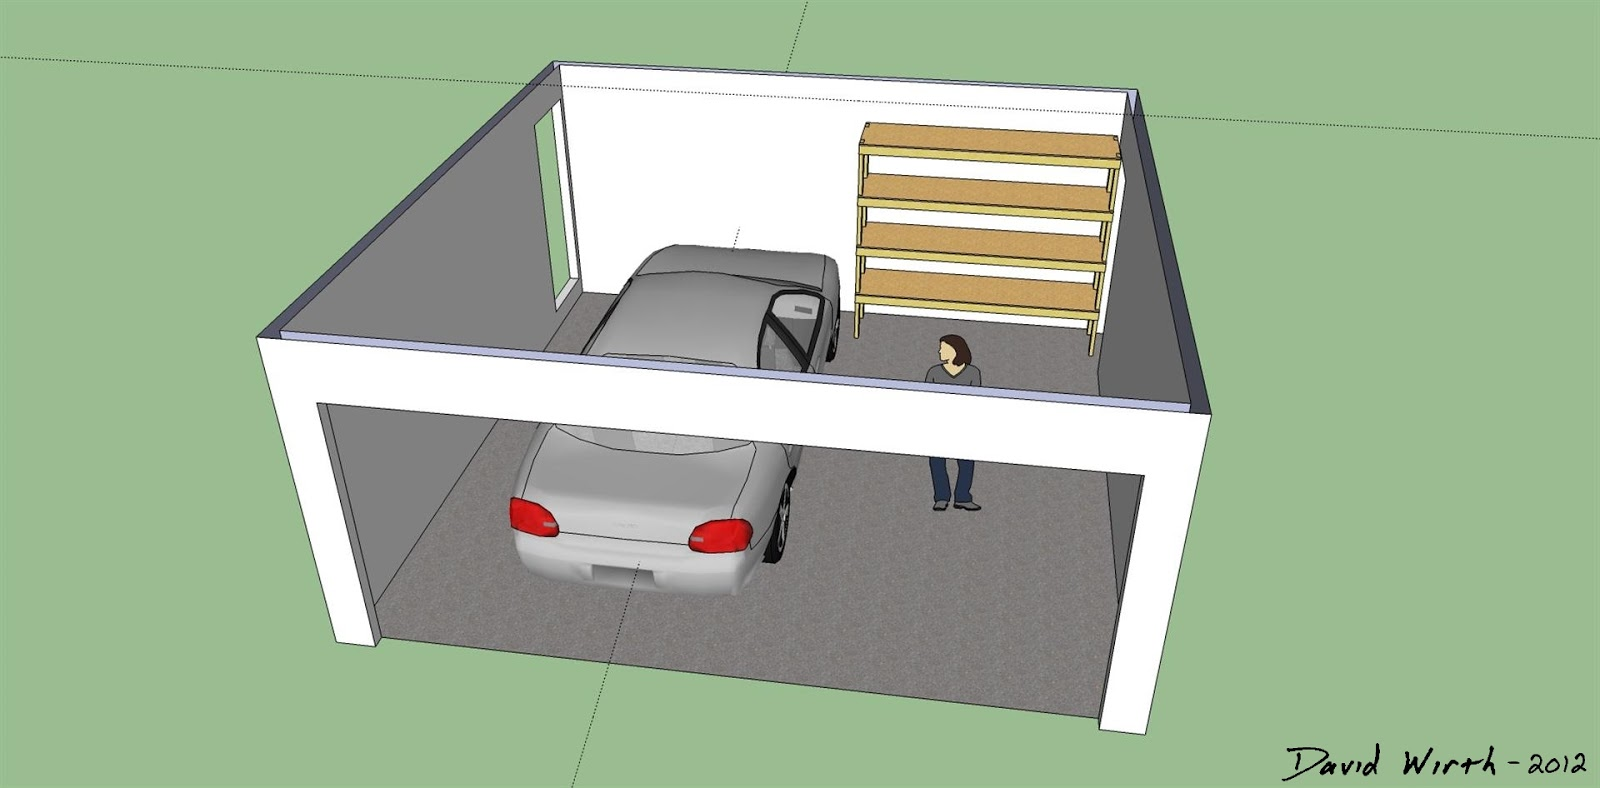 Permalink to build wood garage shelf